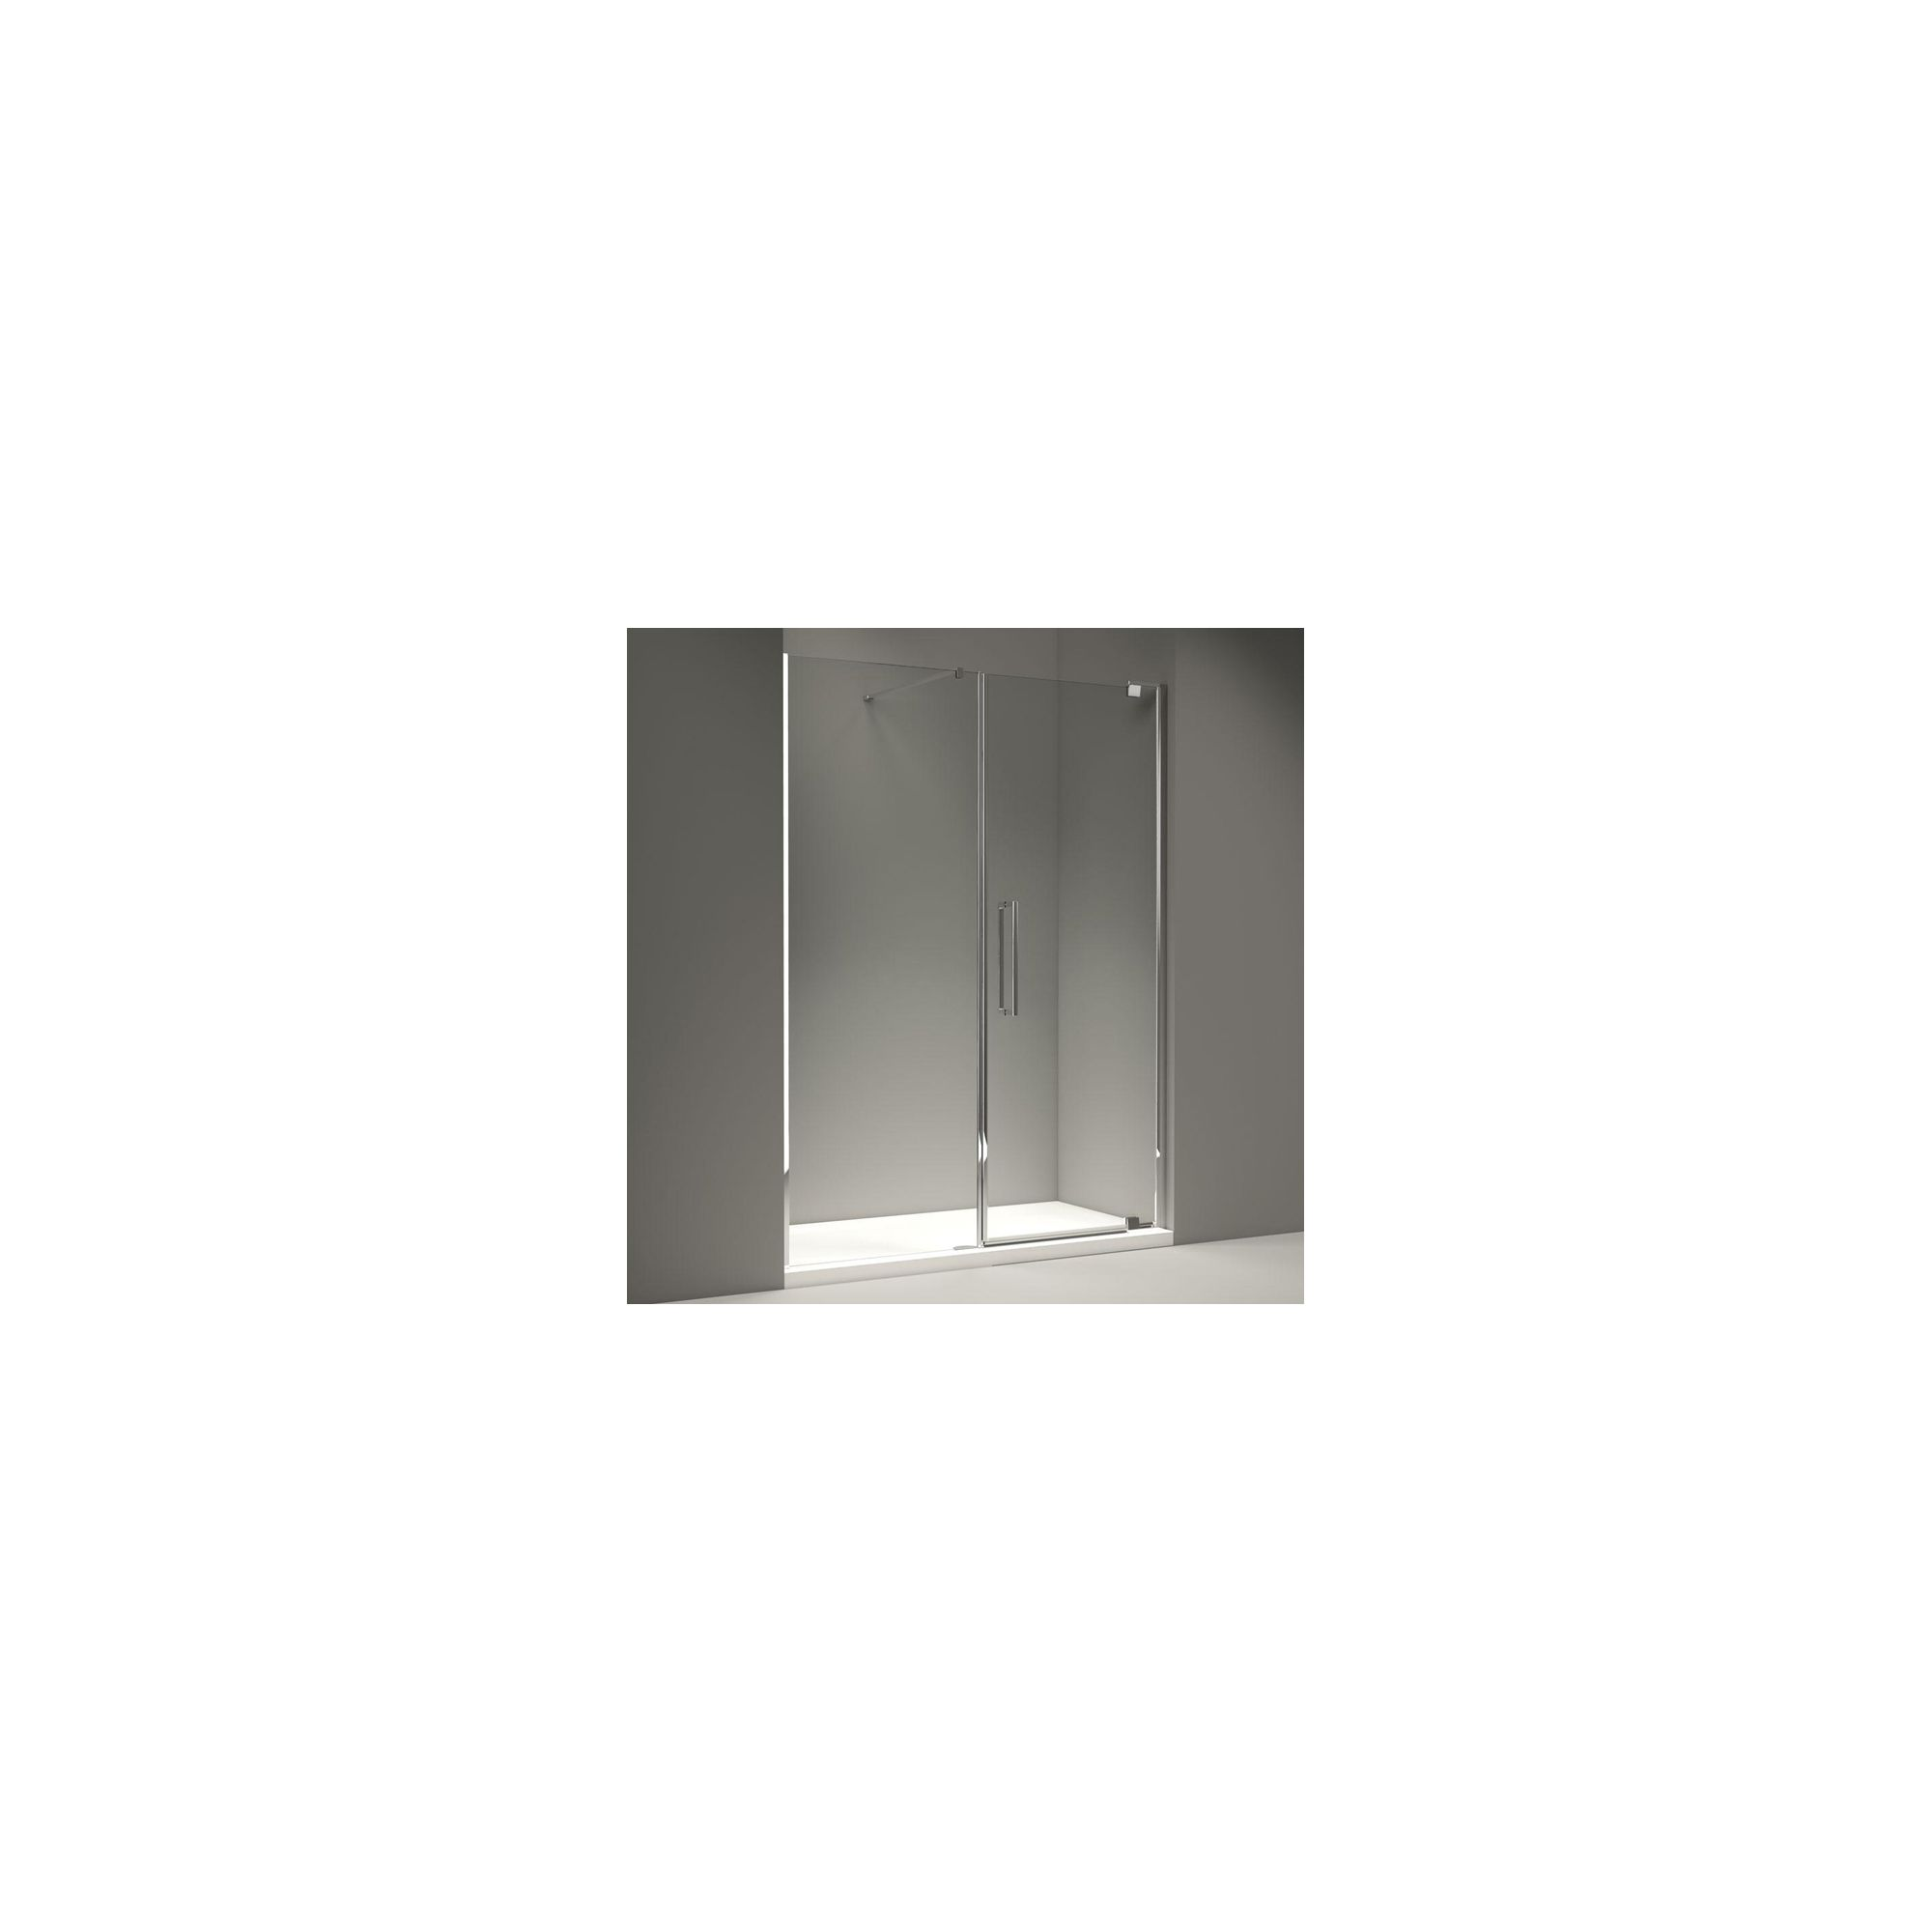 Merlyn Series 10 Inline Pivot Shower Door, 1400mm Wide, 10mm Clear Glass at Tesco Direct